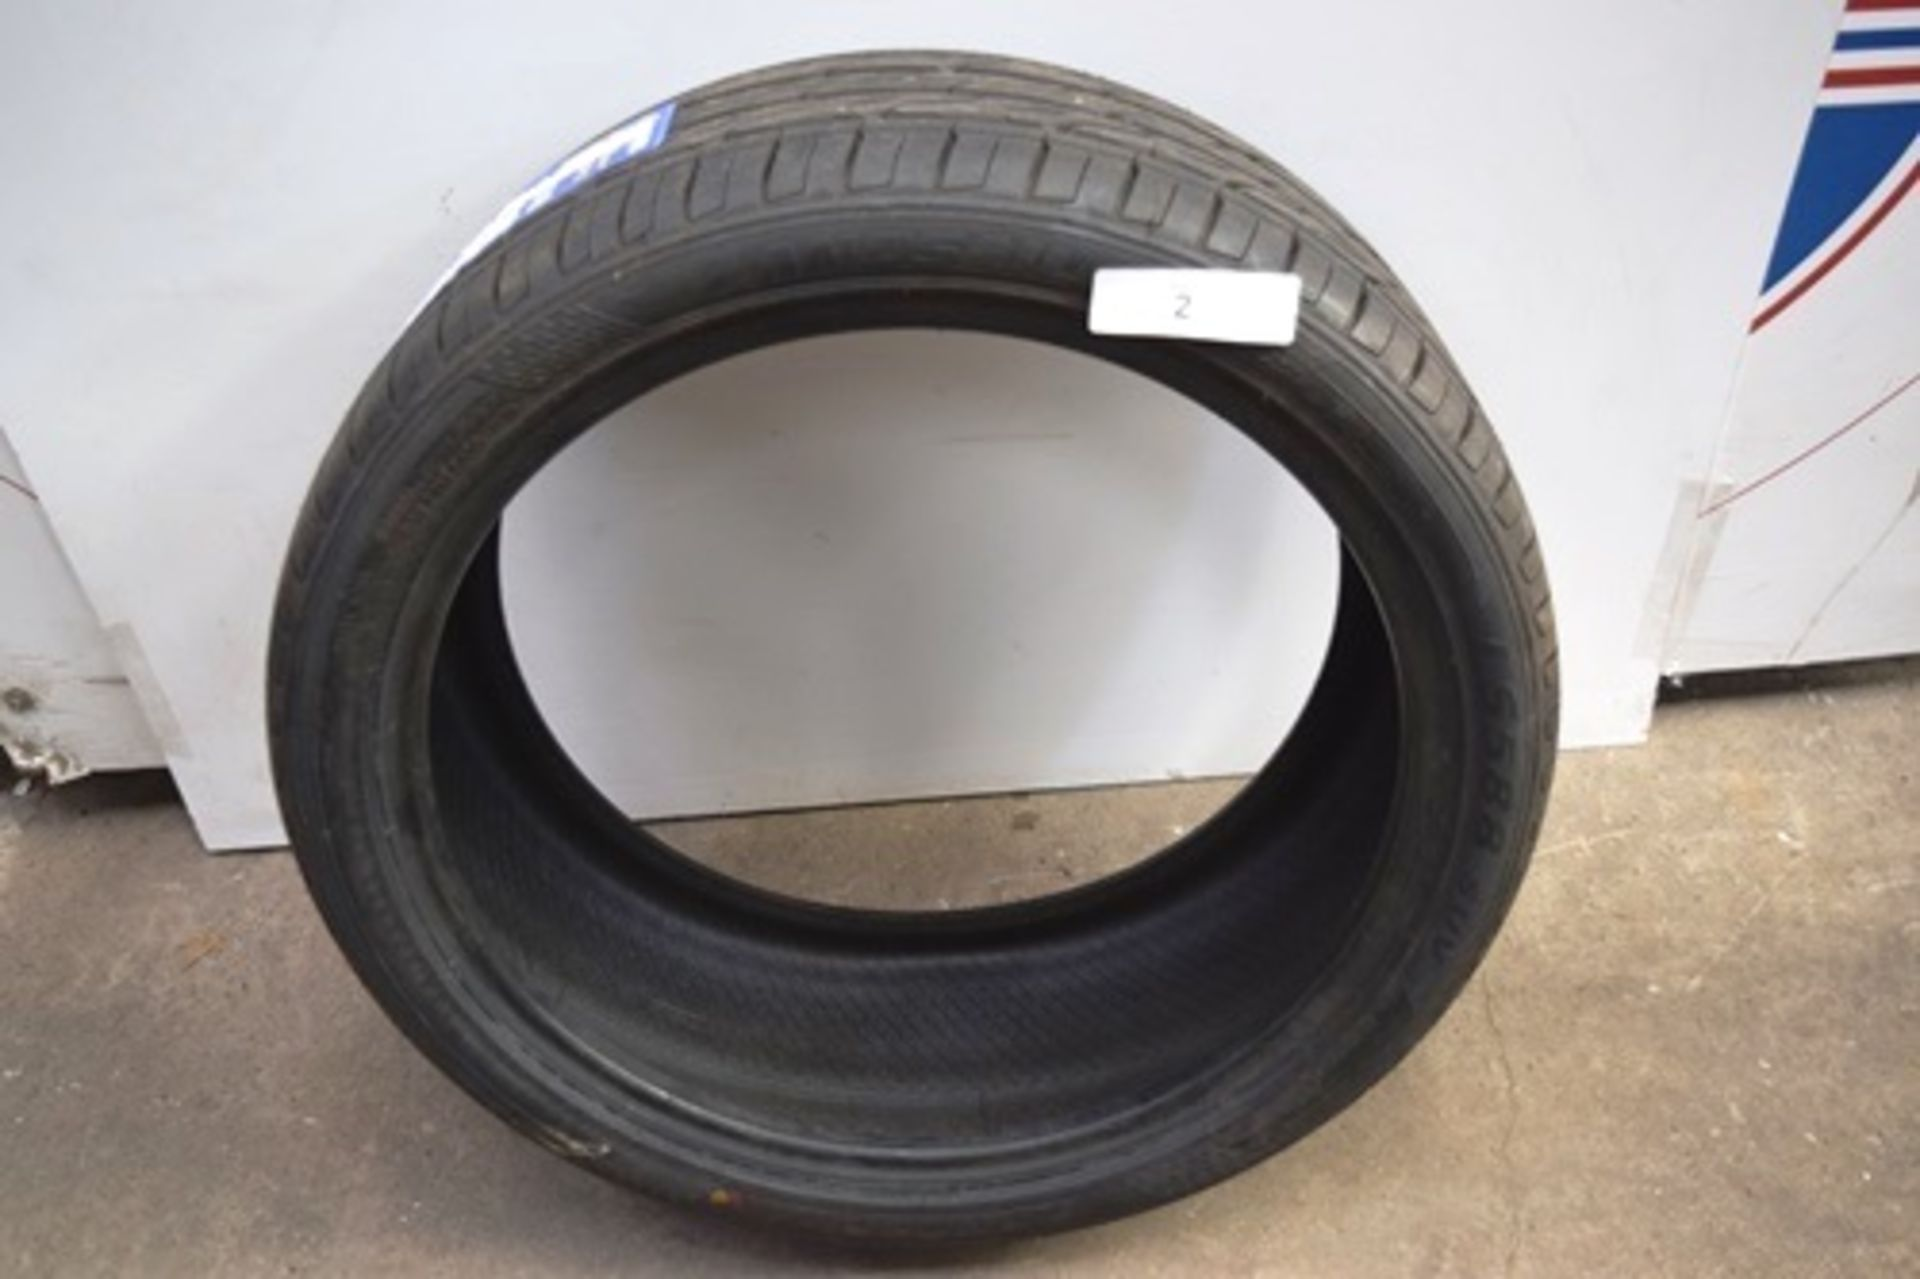 1 x Landsail LS588 SUV tyre, size 285/35ZR22 106W - New (GS1) - Image 2 of 2